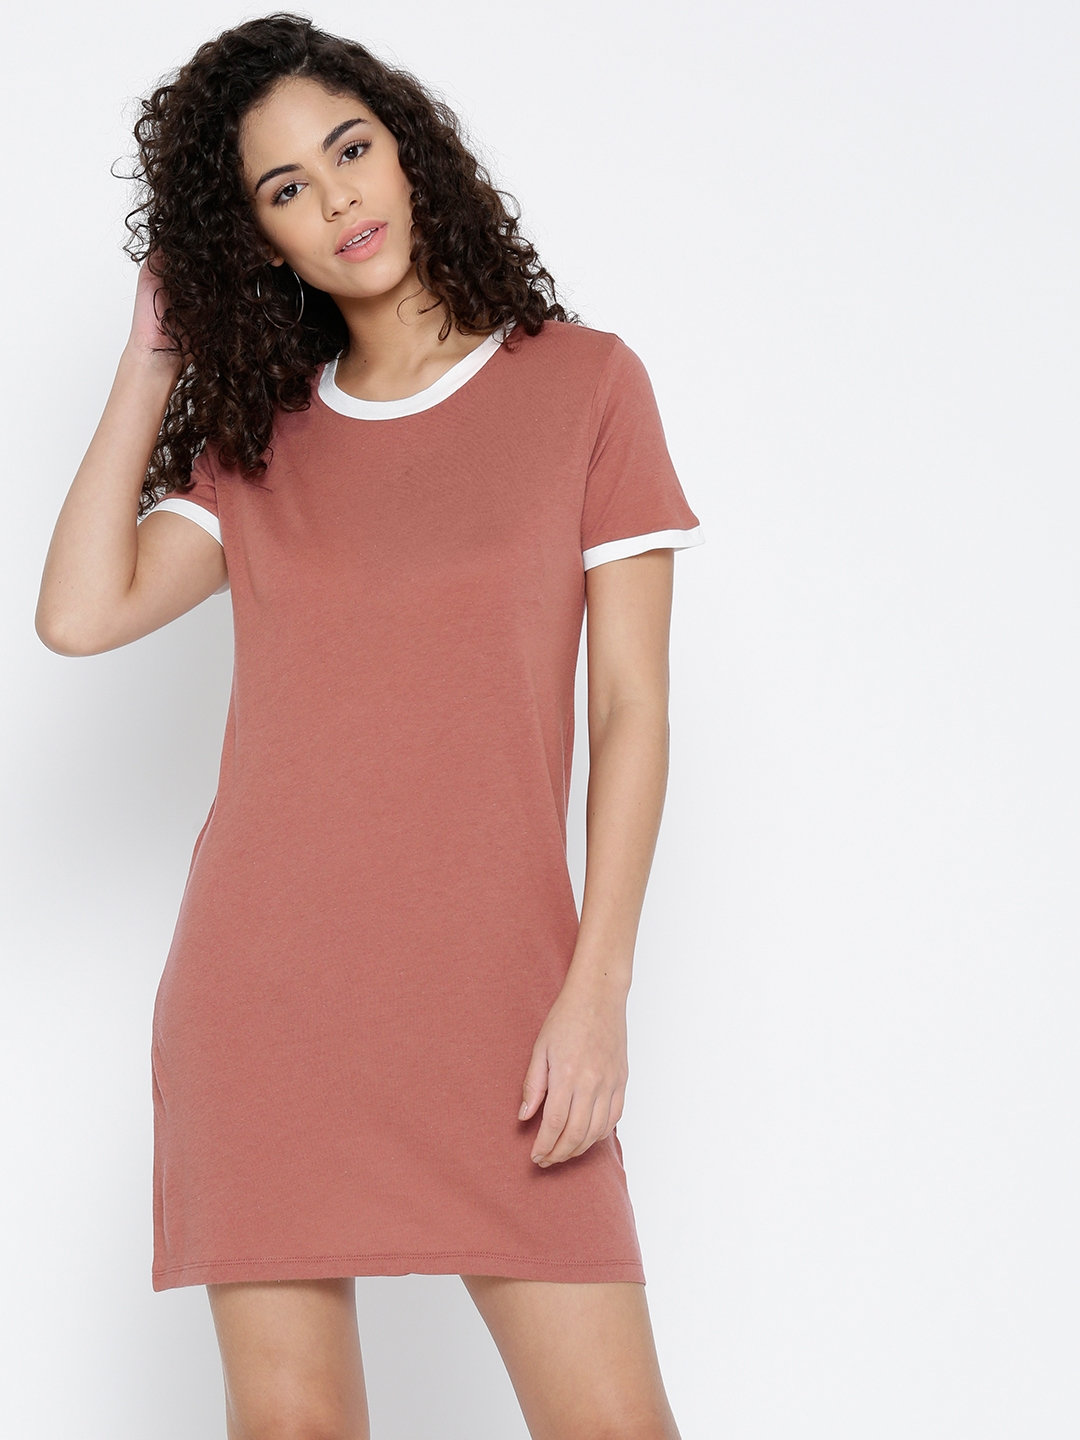 7f18ff0535c4 Buy FOREVER 21 Women Dusty Pink Solid T Shirt Dress - Dresses for ...